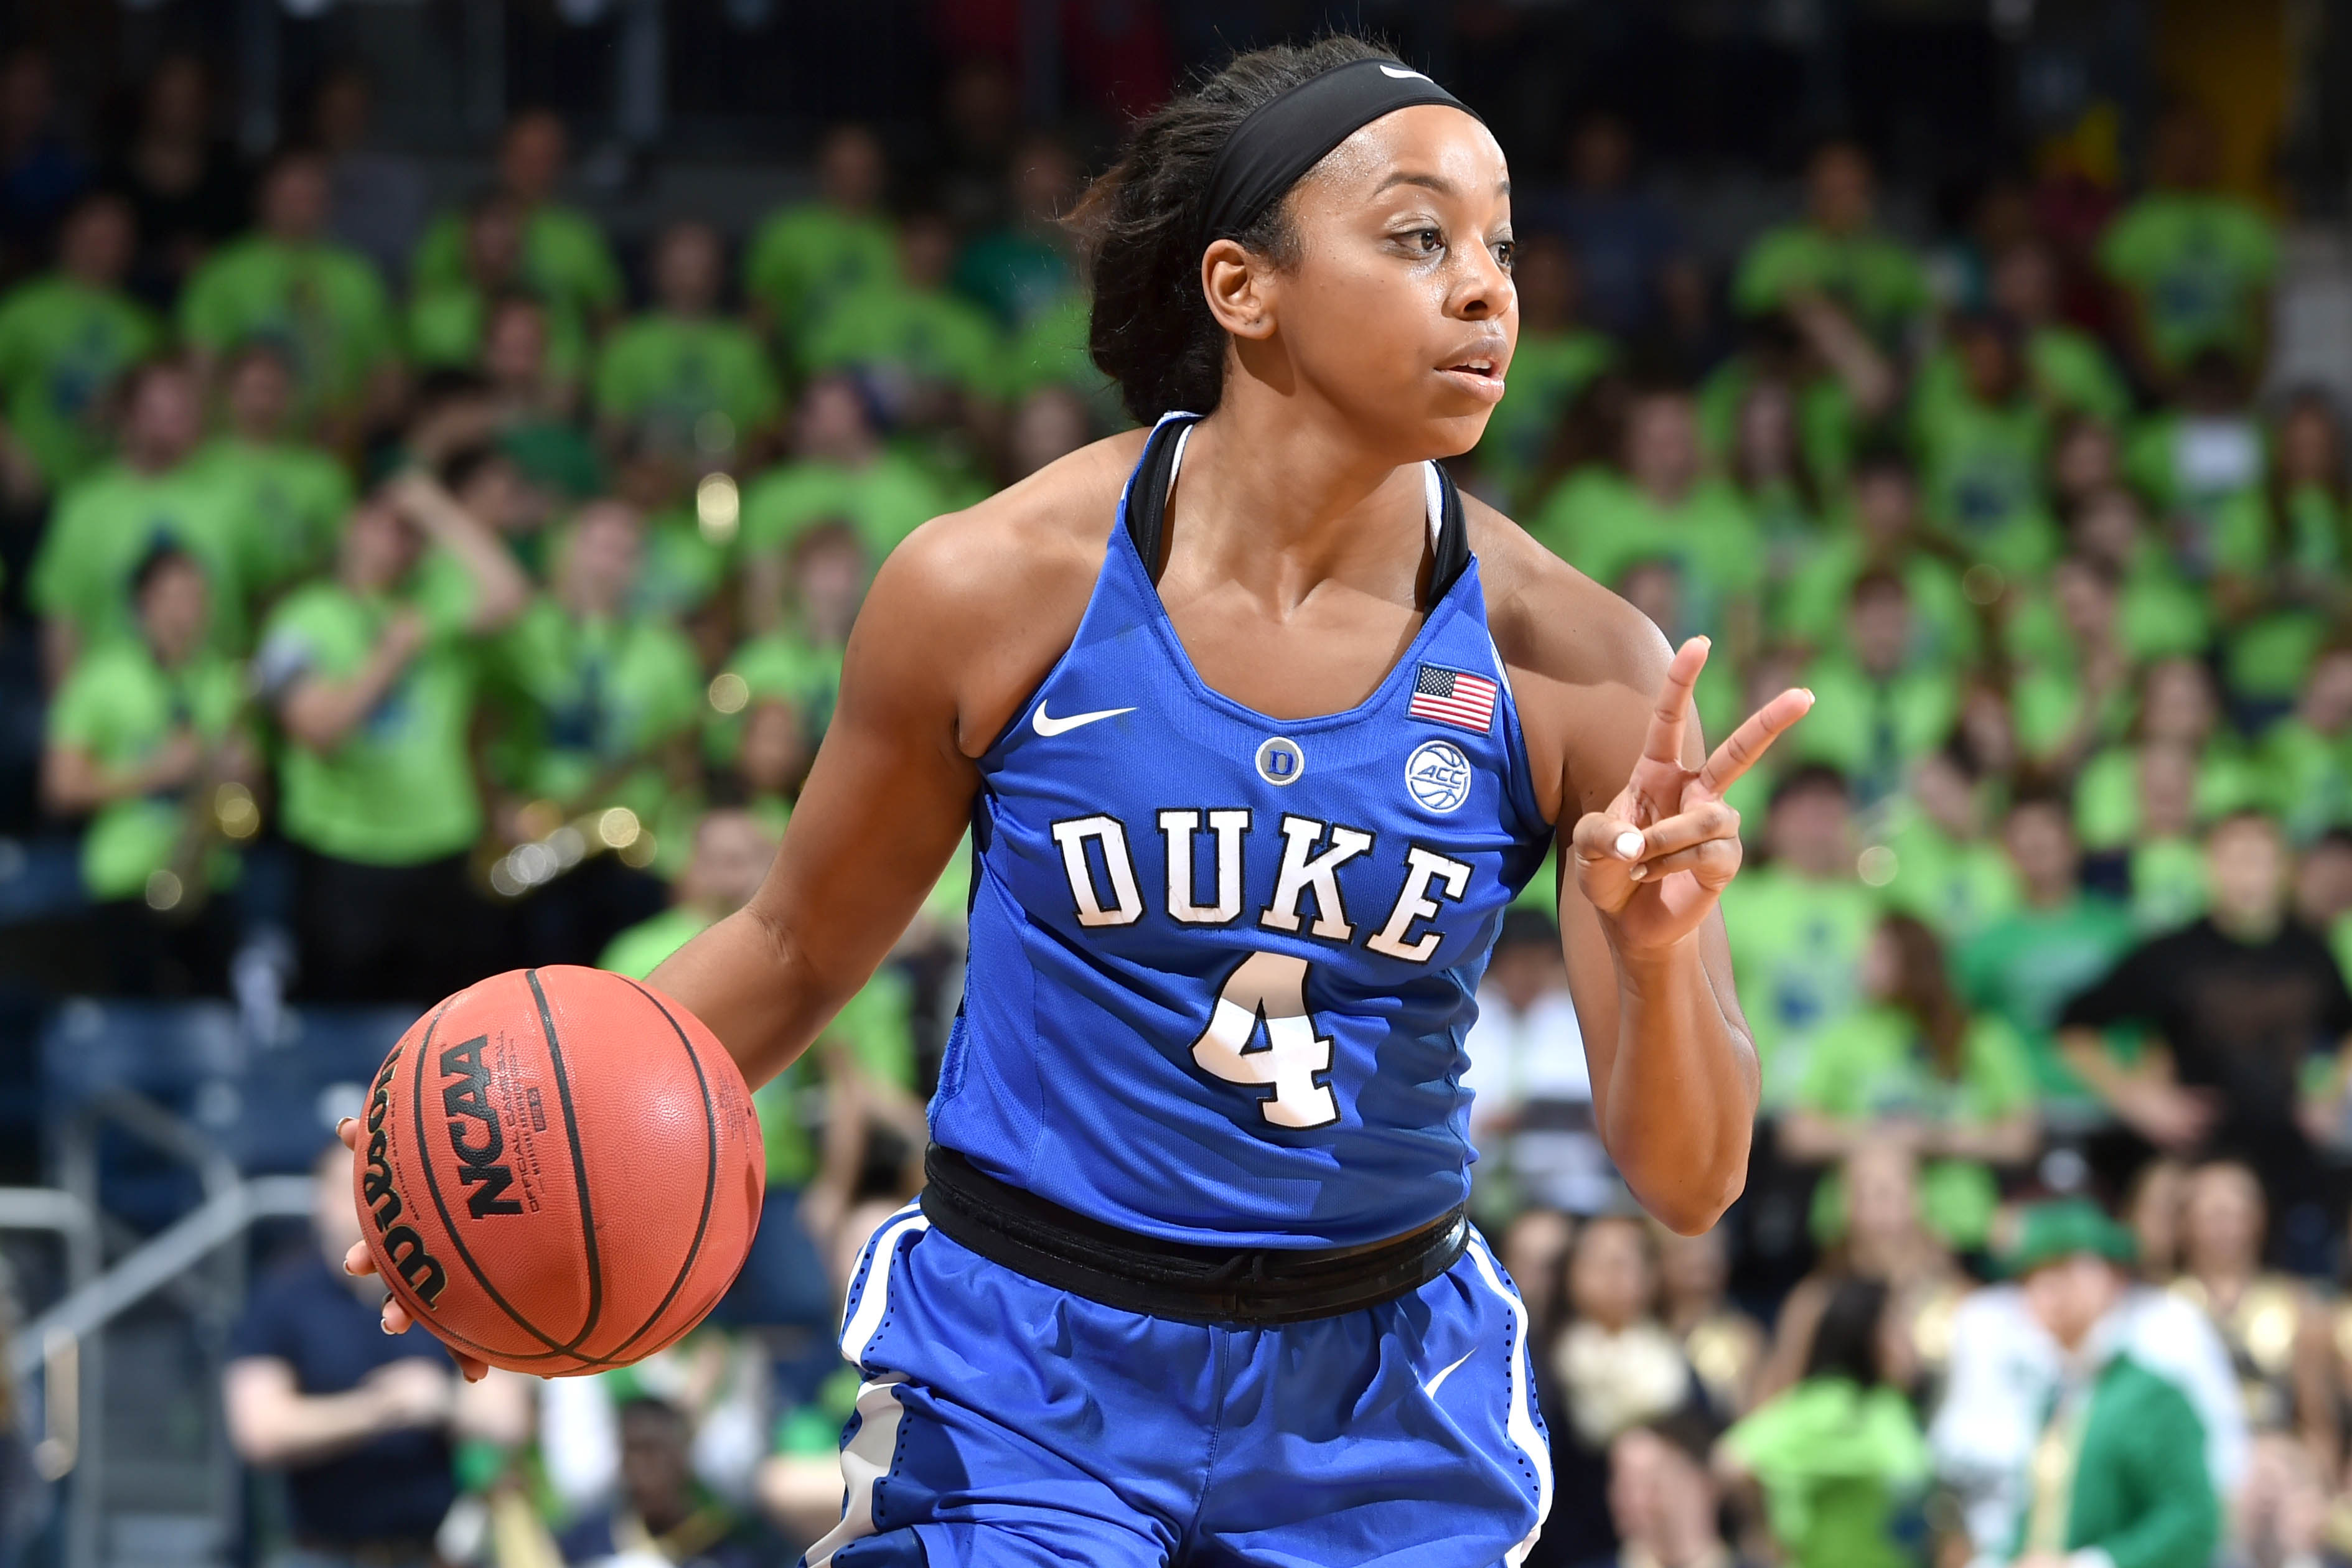 Duke Women's Basketball Adds Three to All-ACC Teams